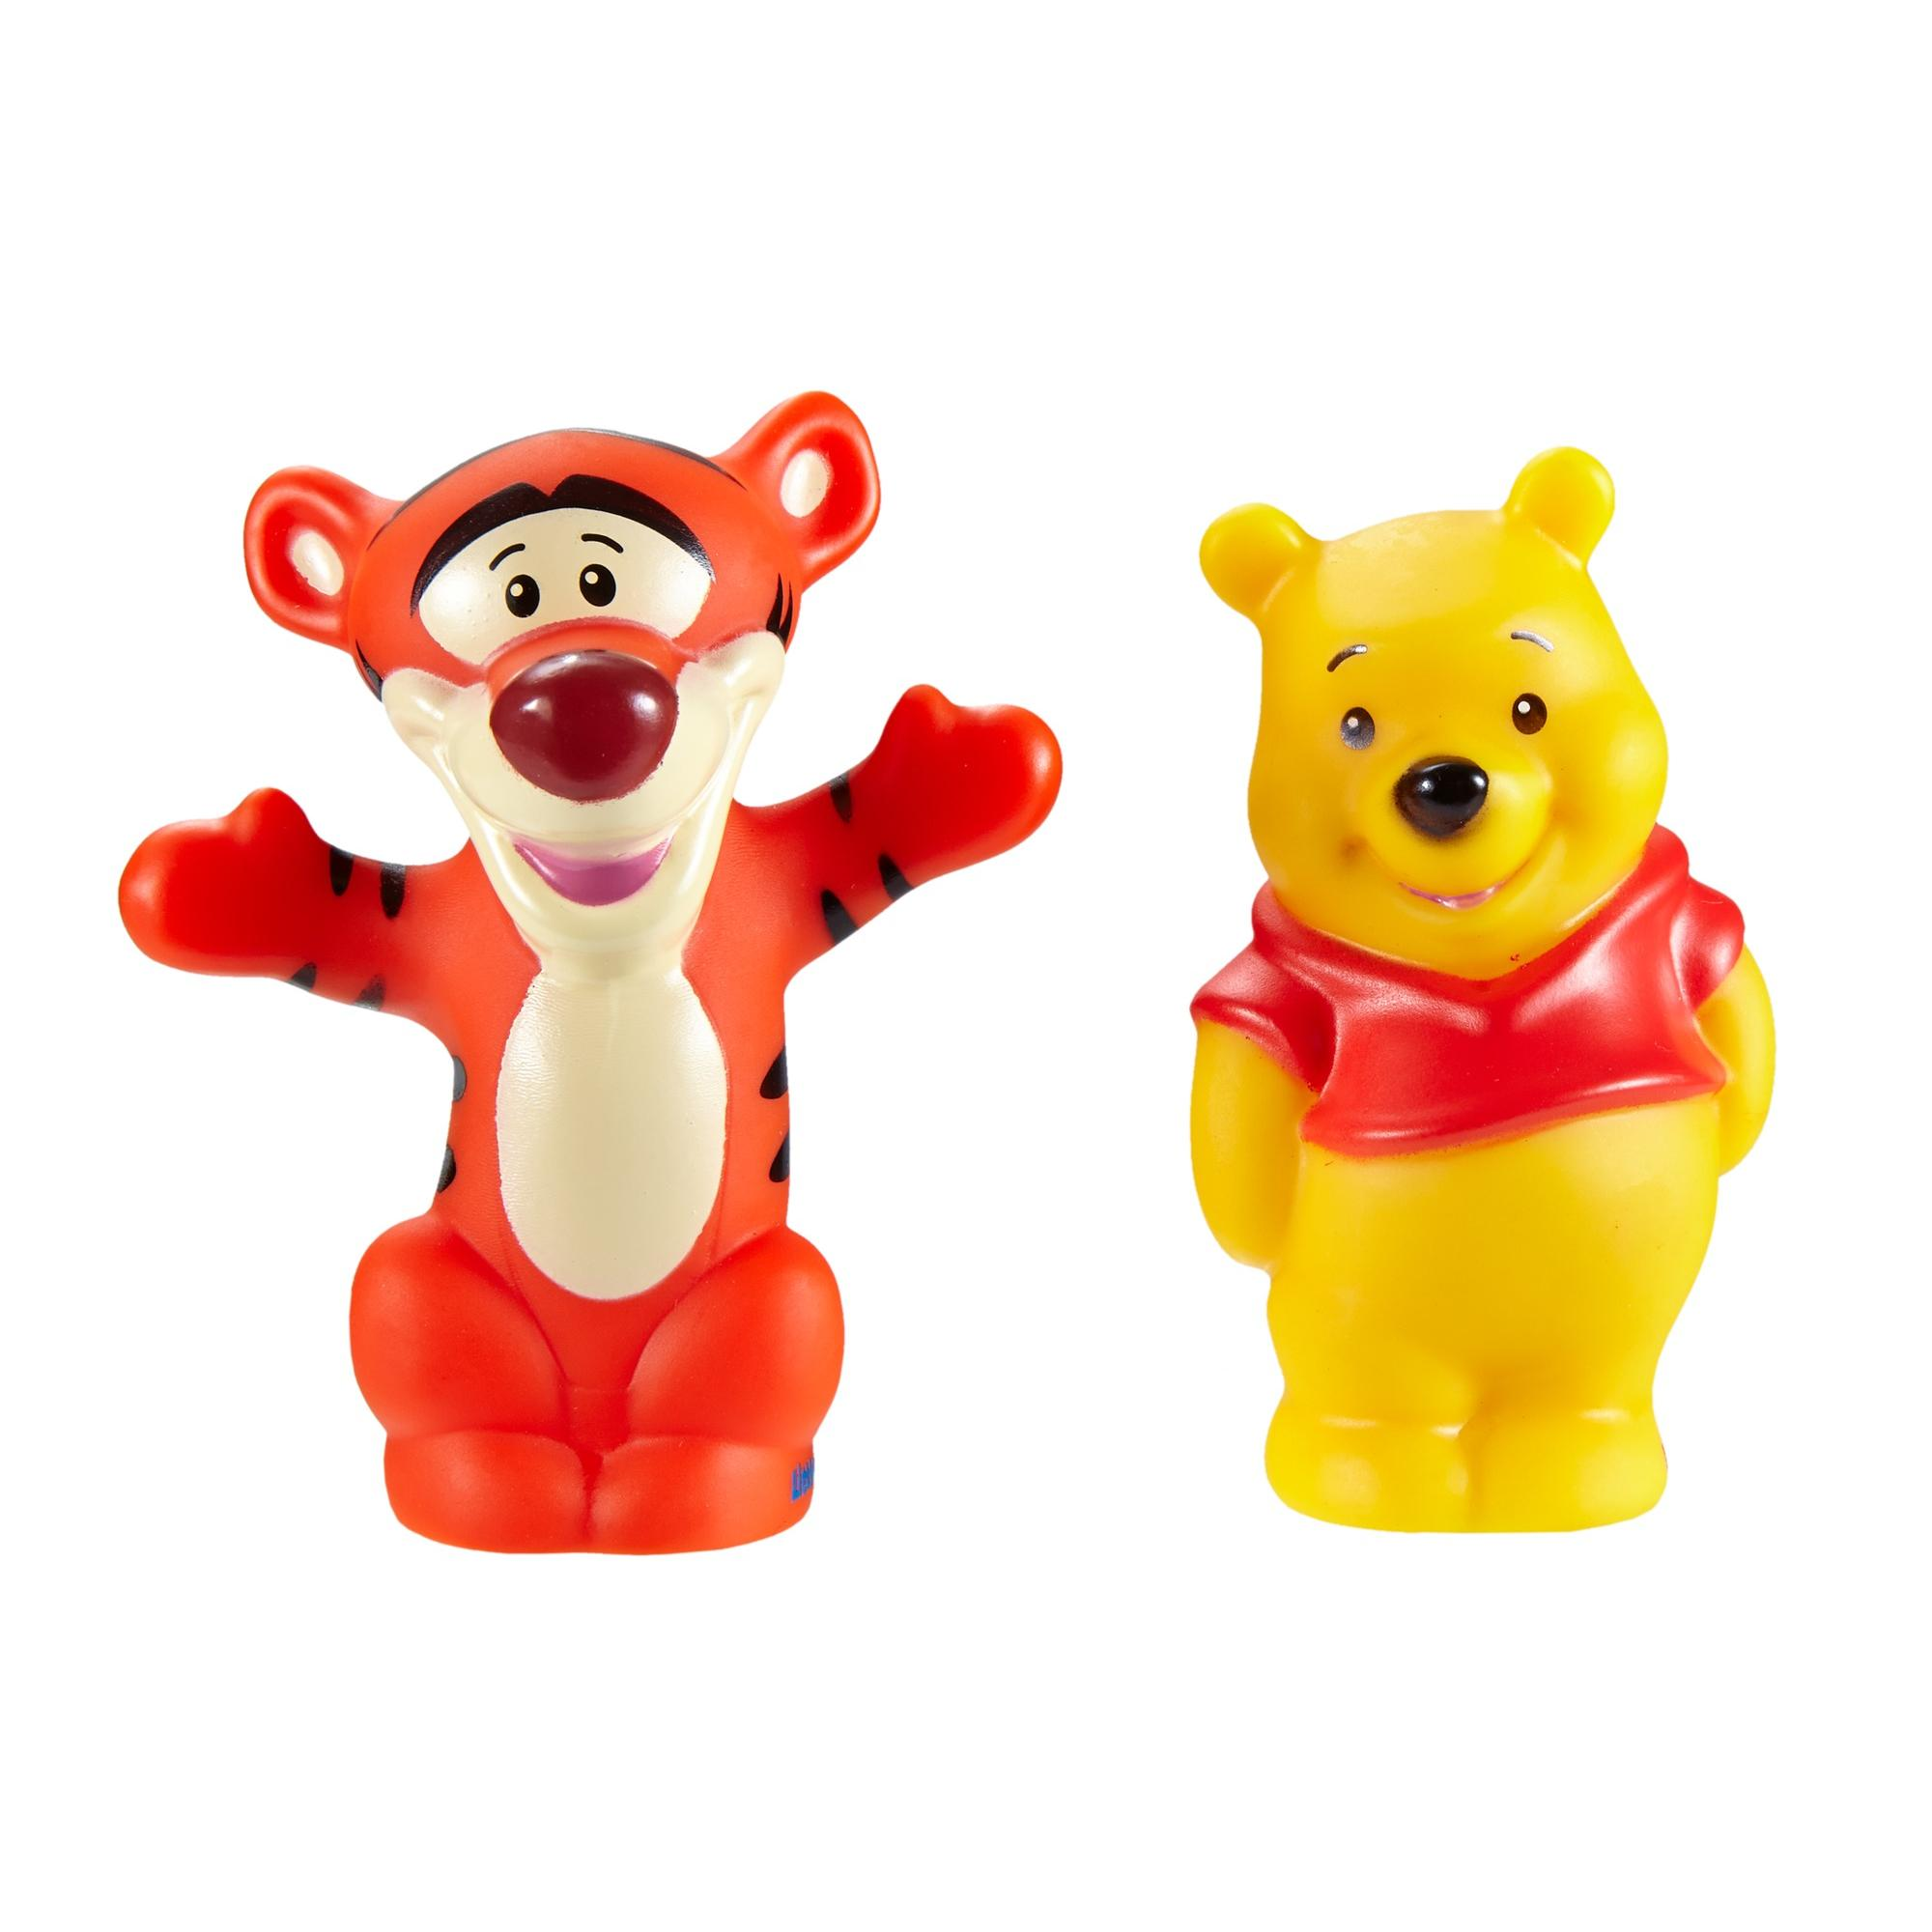 Magic of Disney Pooh & Tigger Friends by Little People